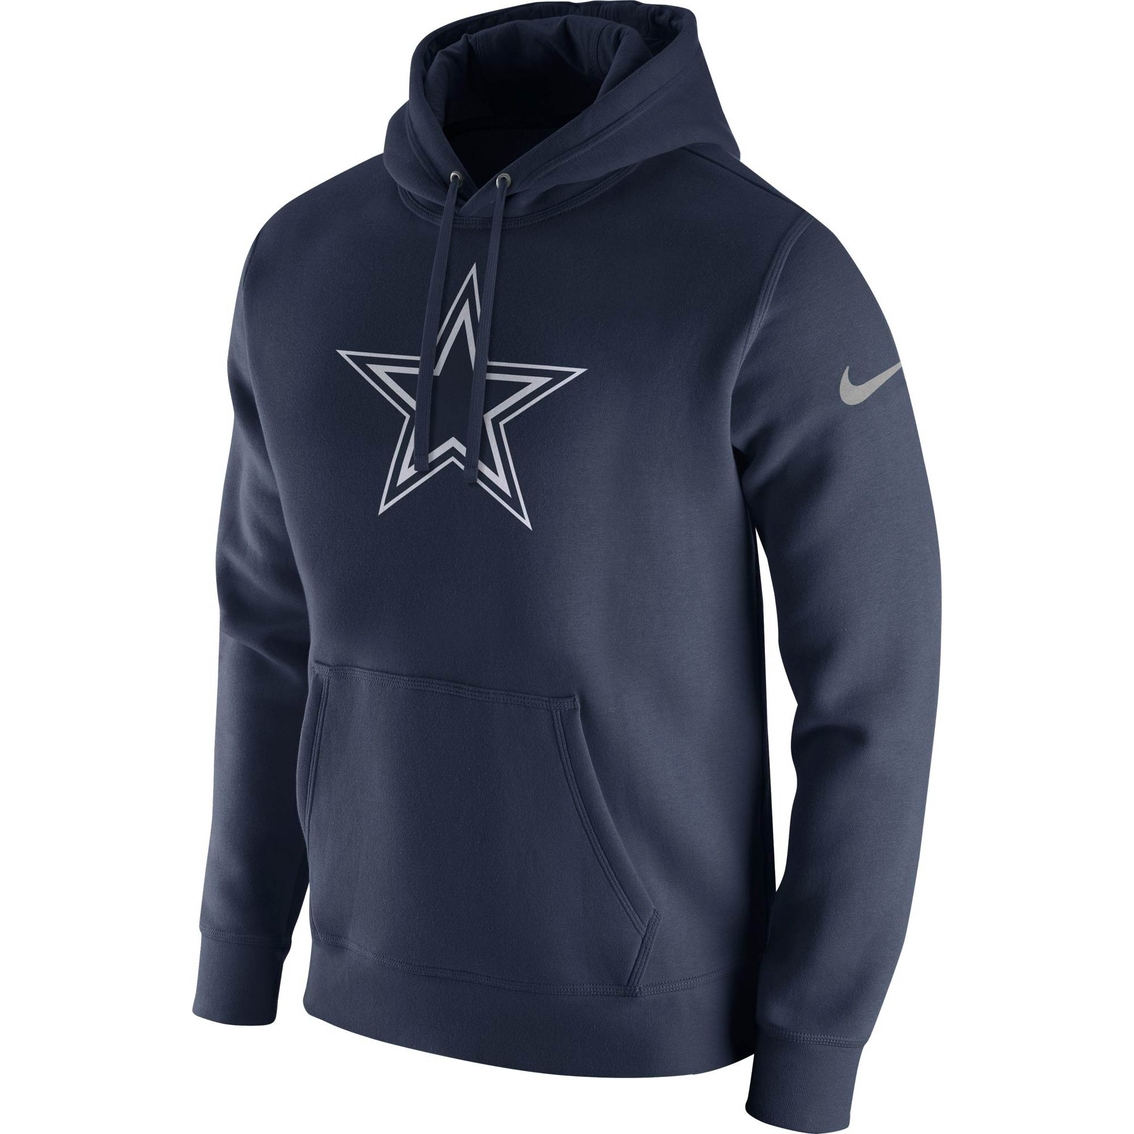 Shop NFL Sweatshirts and Hoodies at Fanatics. Our NFL Sweatshirt selection can't be beat, we stock pullover and zip up NFL Sweatshirts, Crew and Fleece for every football team. Get your NFL Hoodie Sweatshirt today.